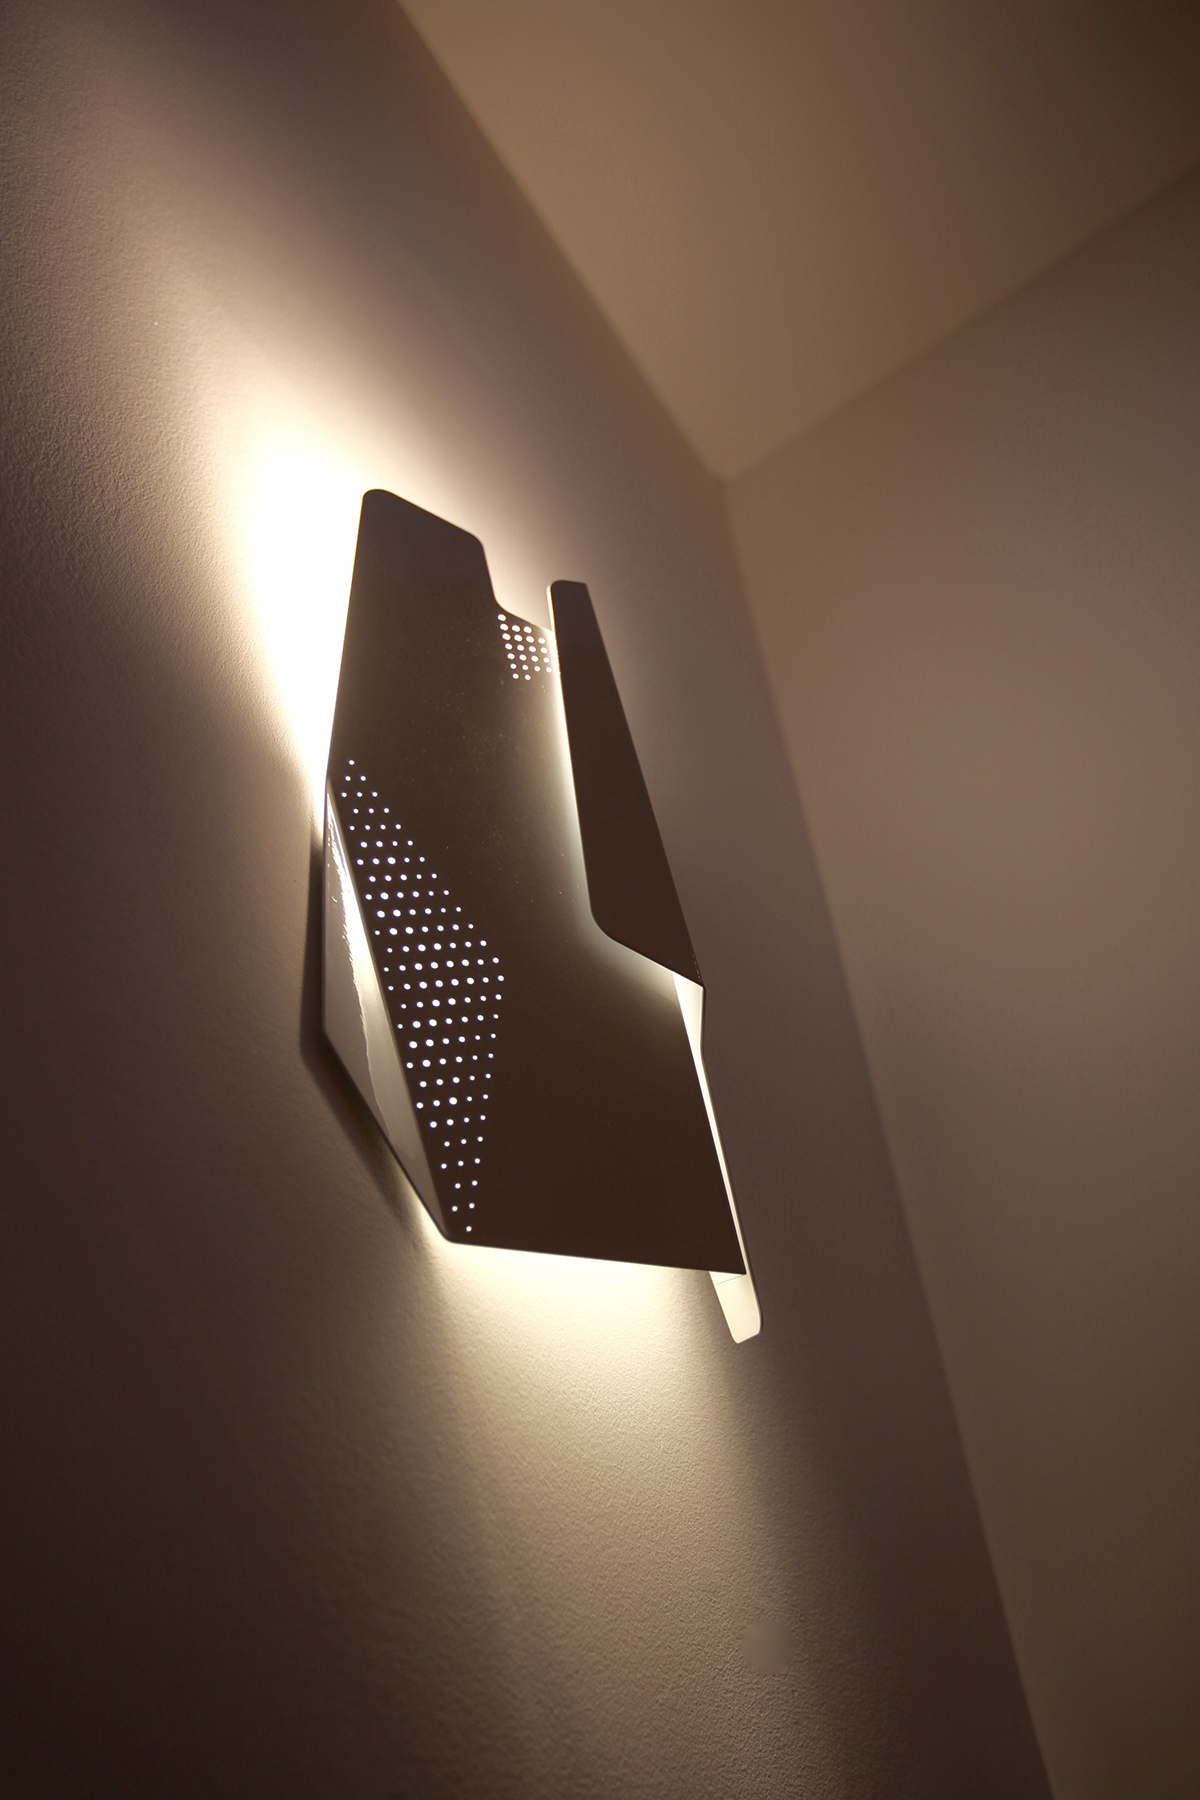 BRAQUES-COLANDER-BY-NIGHT_DESIGNER_SUULIN-ARCHITECTS_PHOTO-CREDIT_SUULIN-ARCHITECTS.jpg